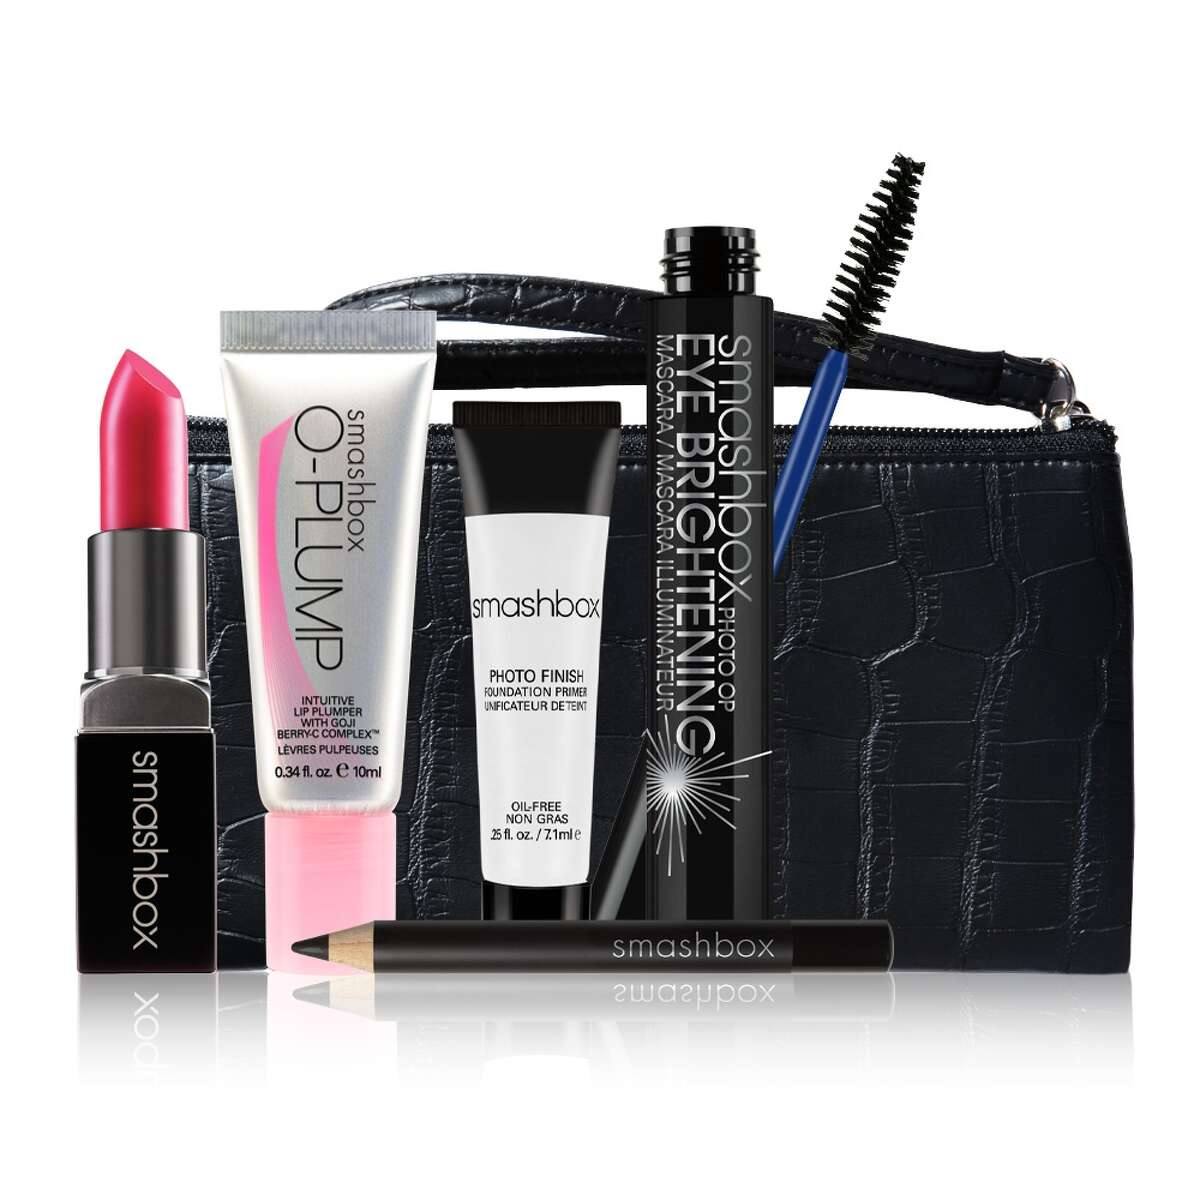 Smashbox's The Bling Ring Kit ($48 / $81 value) includes the Be Legendary Lipstick in Electric Pink, Matte. O-Plump Intuitive Lip Plumper, Photo Op Eye Brightening Mascara, Travel-Size Eye Liner Pencil in Onyx, Deluxe Sample Photo Finish Foundation Primer and Black Faux Croc Clutch. Avail only on Smashbox.com